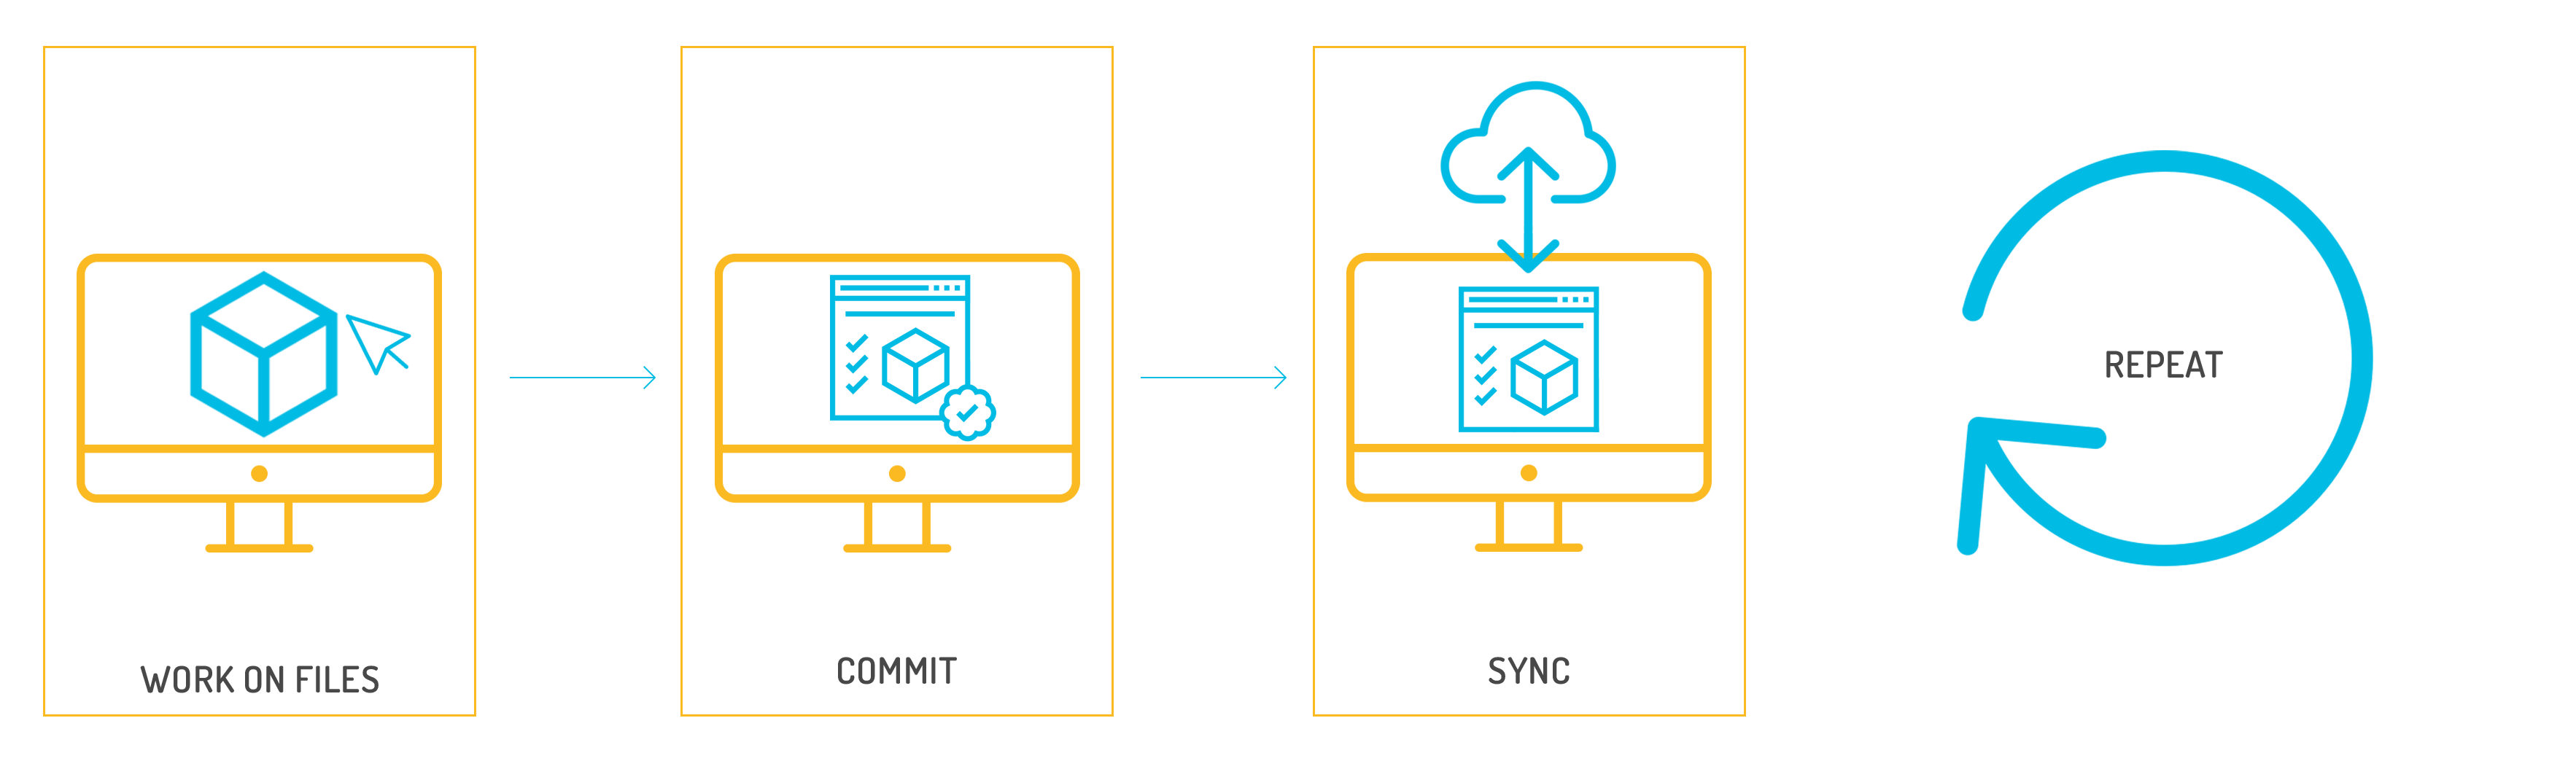 Illustration-process-(work-files-commit-sync)